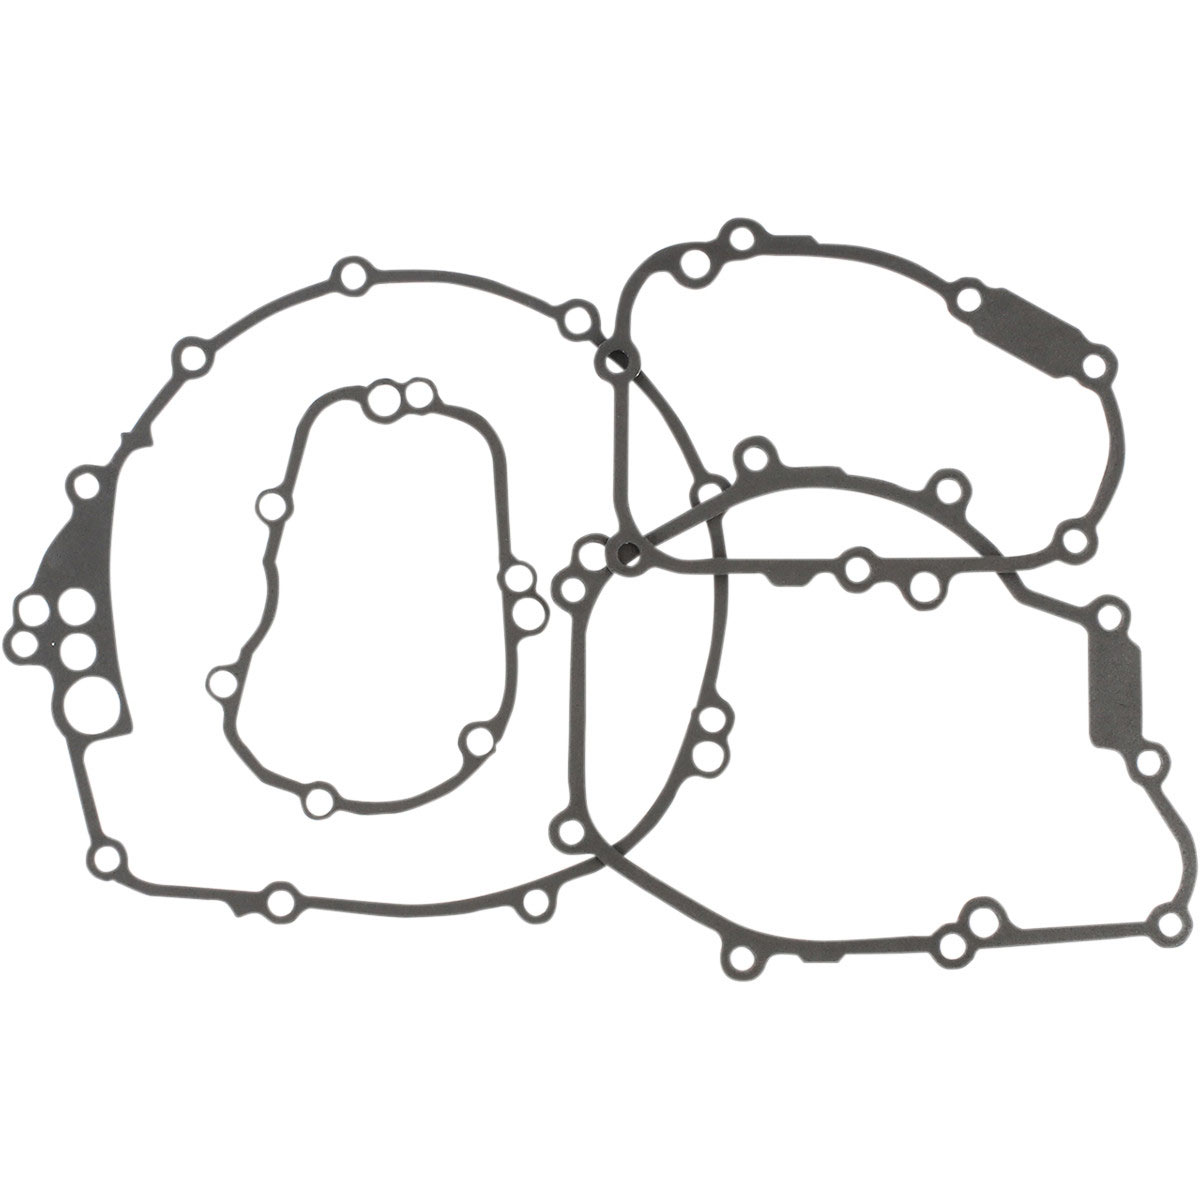 Cometic Lower End Gasket Kit for YZF-R6 99-02